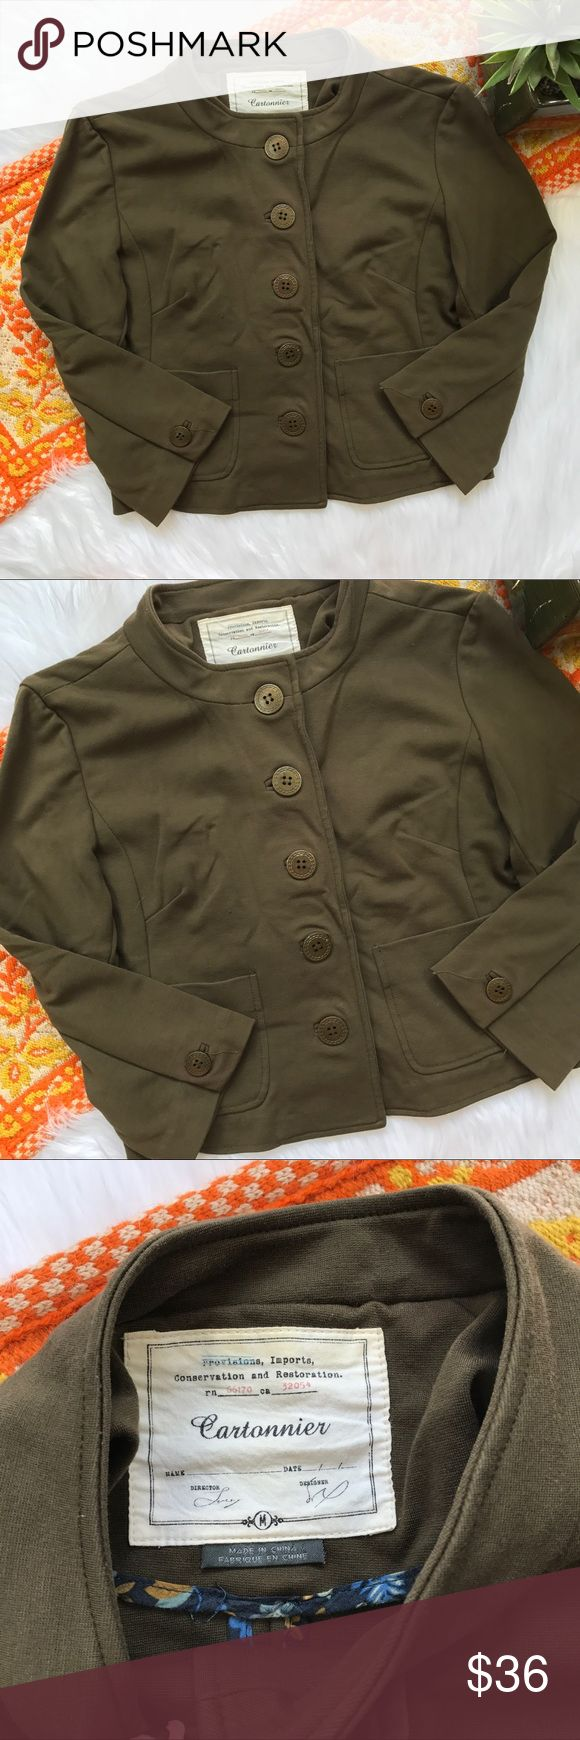 Anthro cartonnier olive green blazer jacket Size medium. In excellent condition, no flaws! Length-18, bust-17.5 pit to pit, has quarter sleeves which is perfect for the fall transition! *** no modeling or trades! ::218 Anthropologie Jackets & Coats Blazers